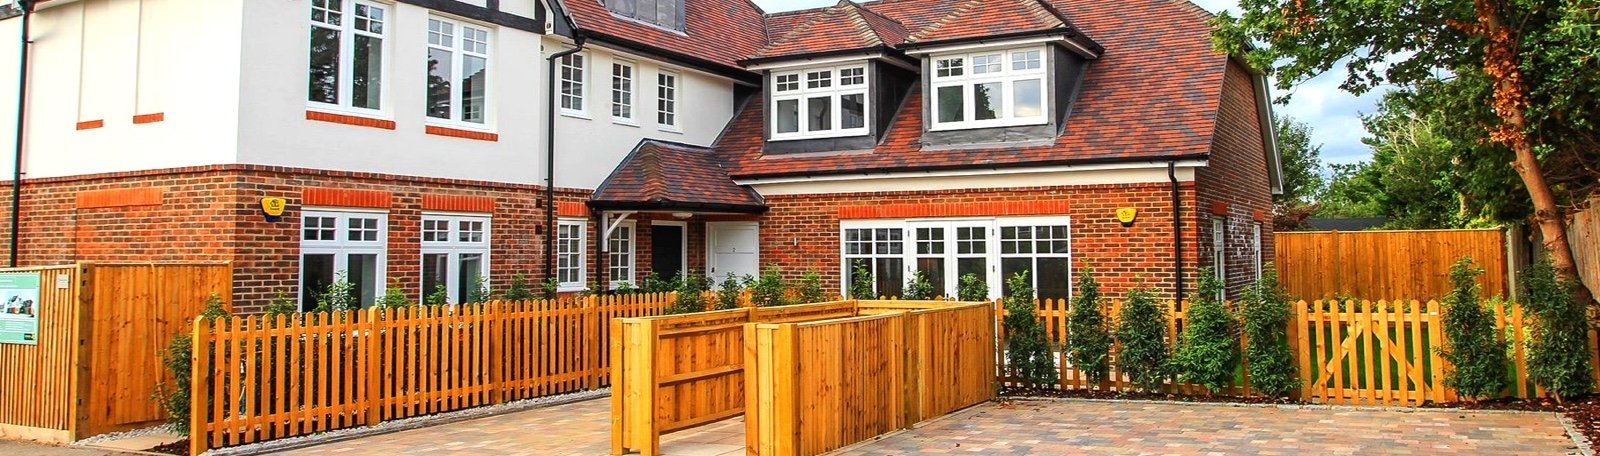 Claygate & Hinchley Wood property market update